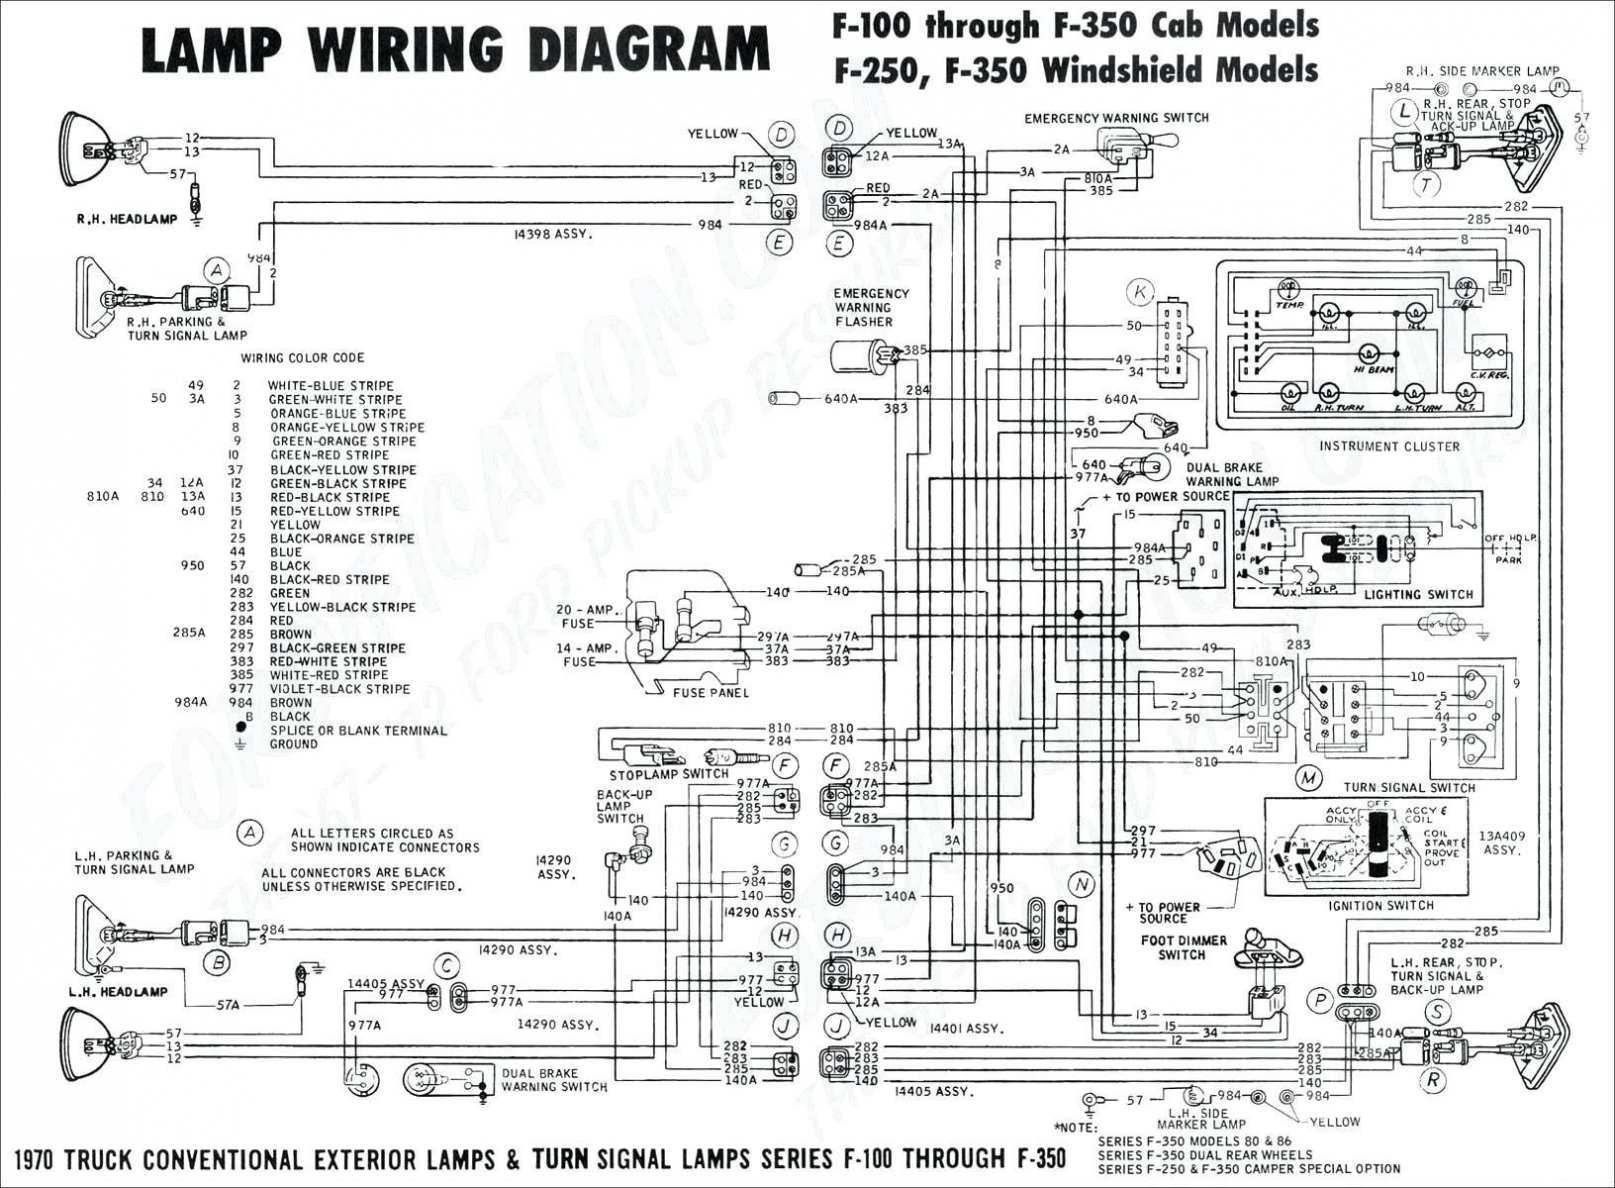 hight resolution of 1989 ford taurus wiring diagram wiring diagram world 1989 ford taurus fuse box diagram wiring diagram